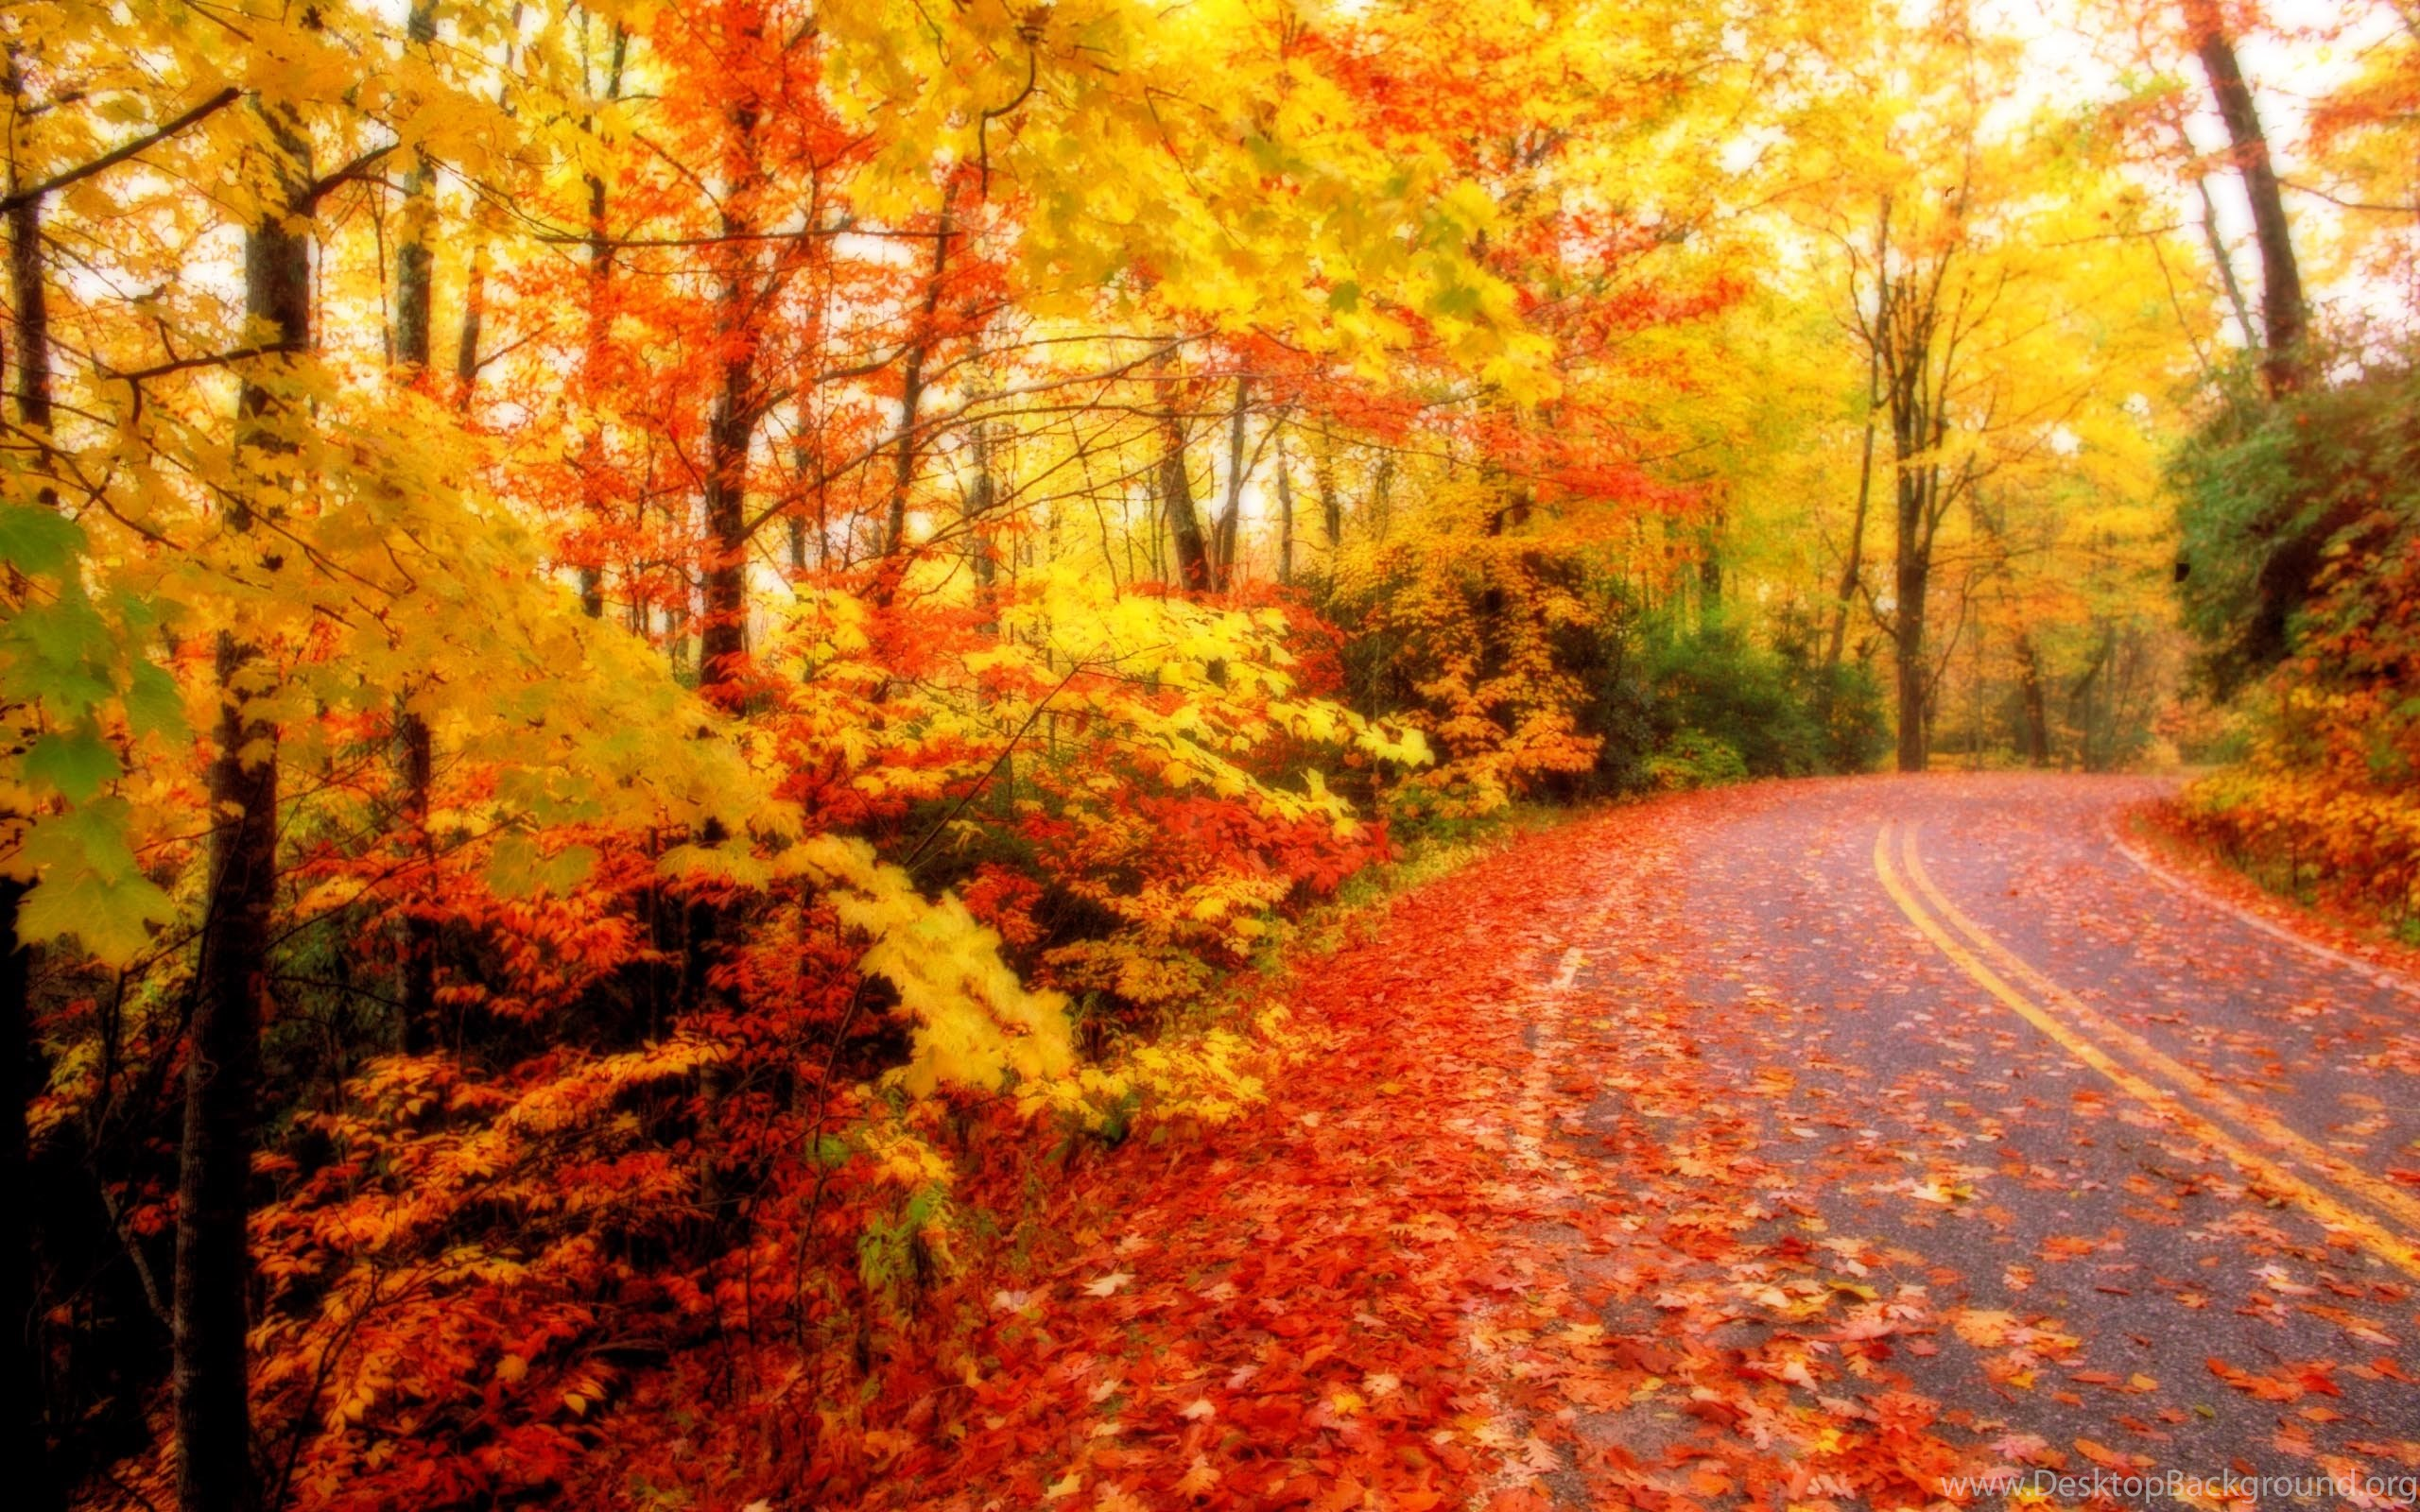 Fall Android Wallpaper Fall Leaf Android Wallpapers Attachment 11000 Amazing Wallpaperz